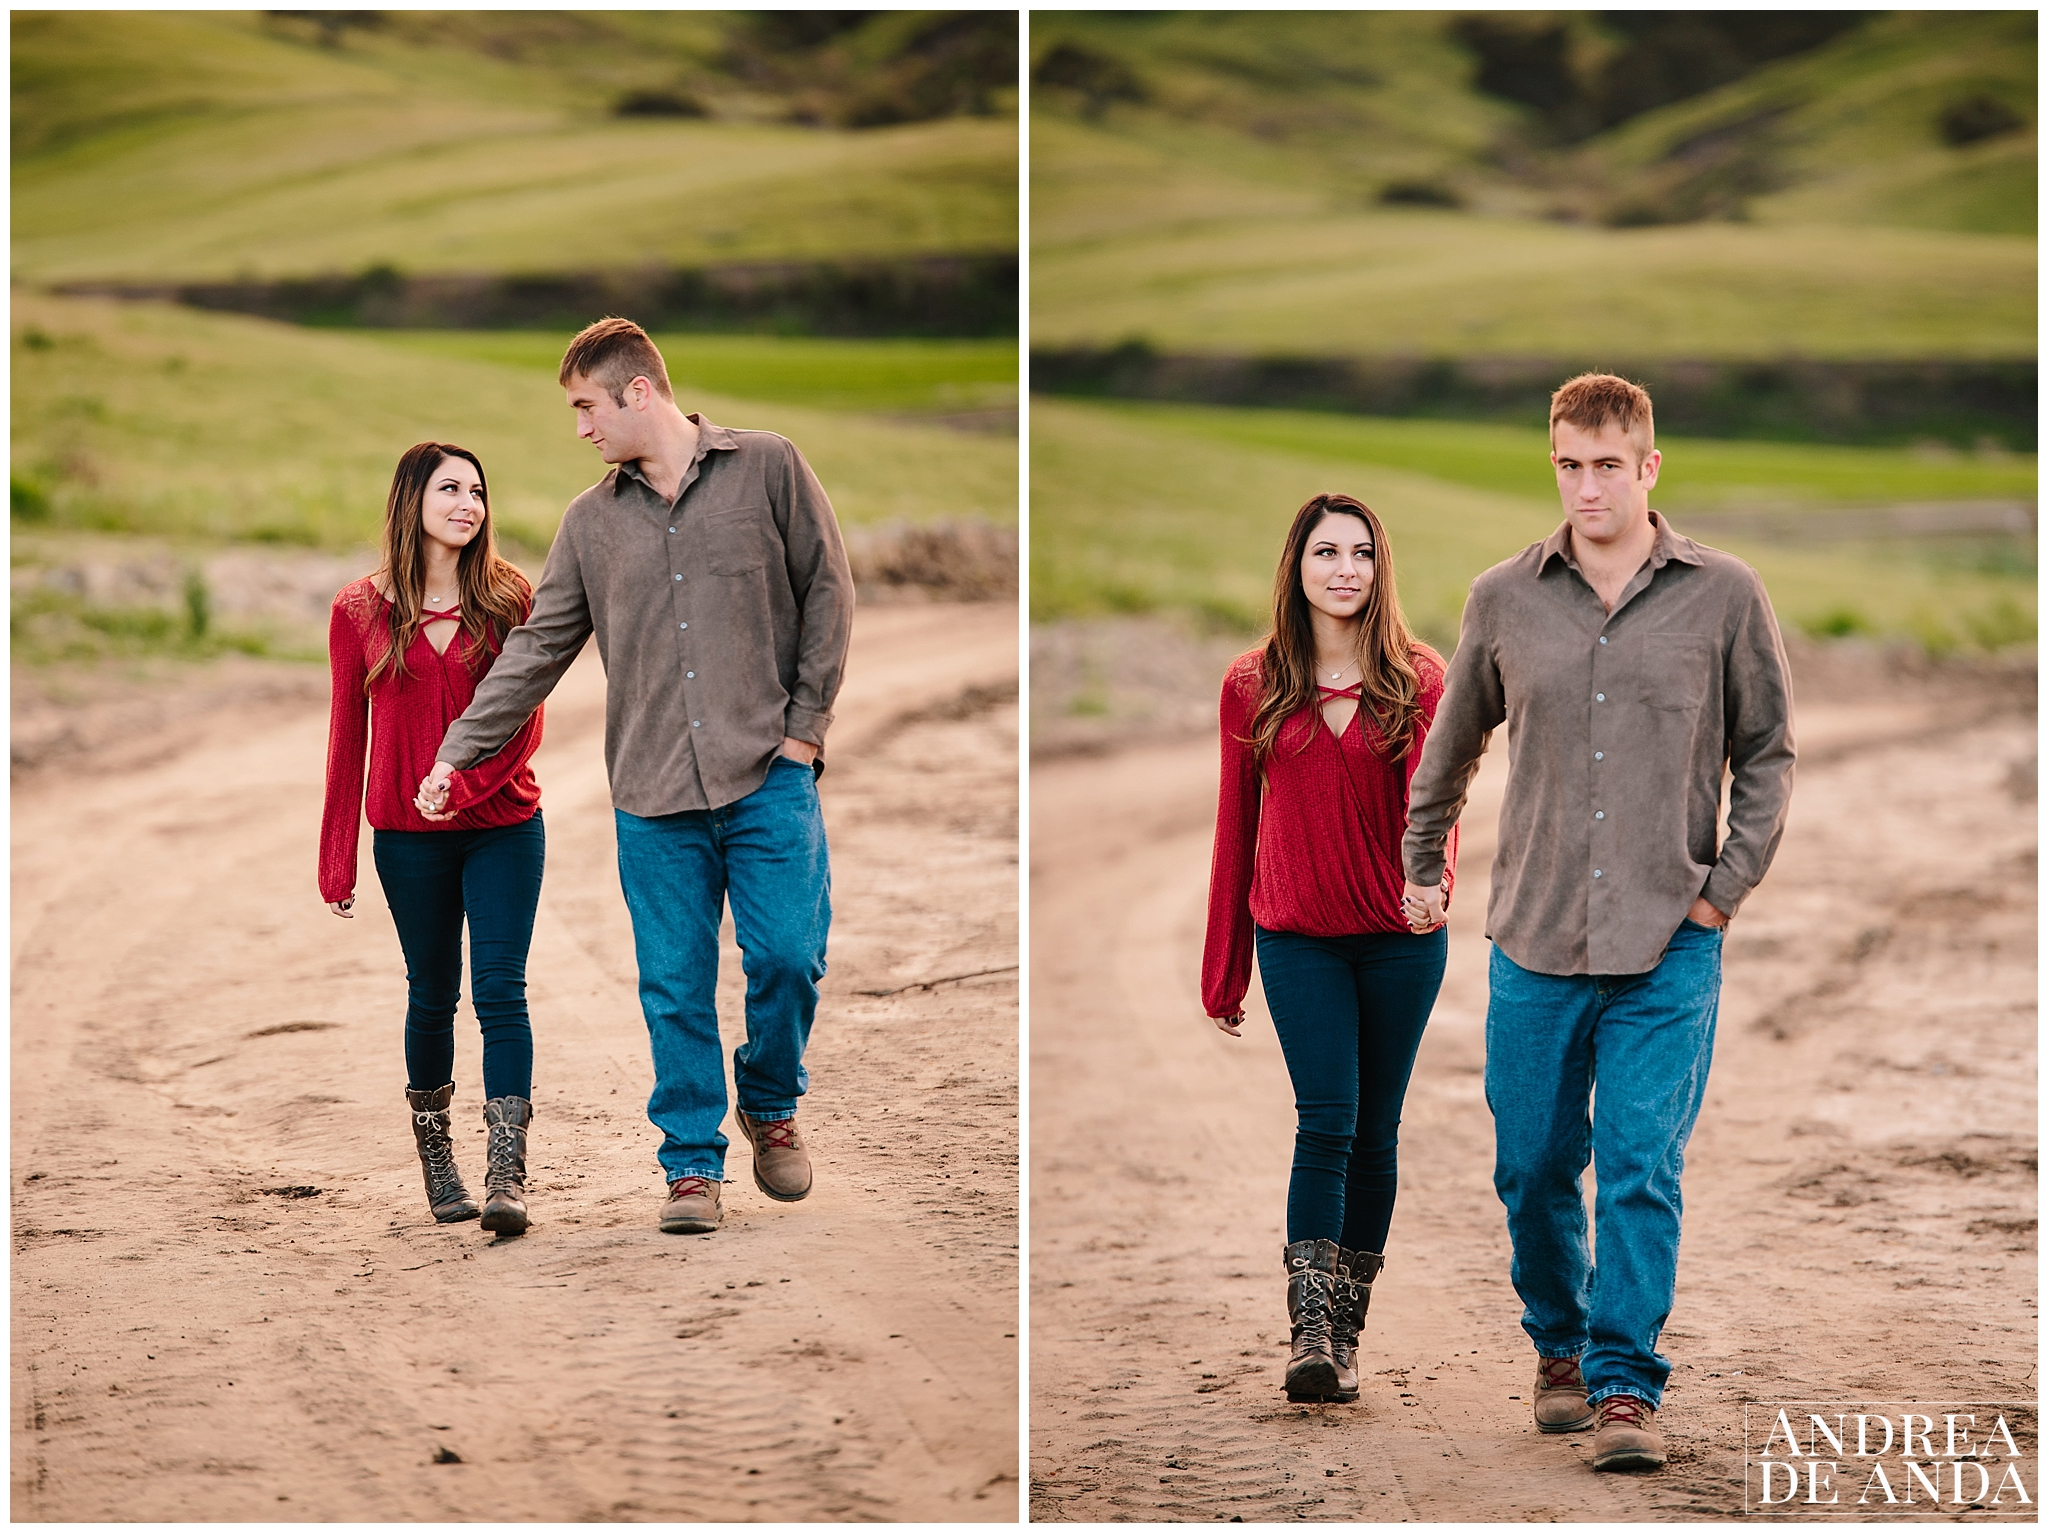 Orcutt Engagement session_Andrea de Anda Photography__0006.jpg